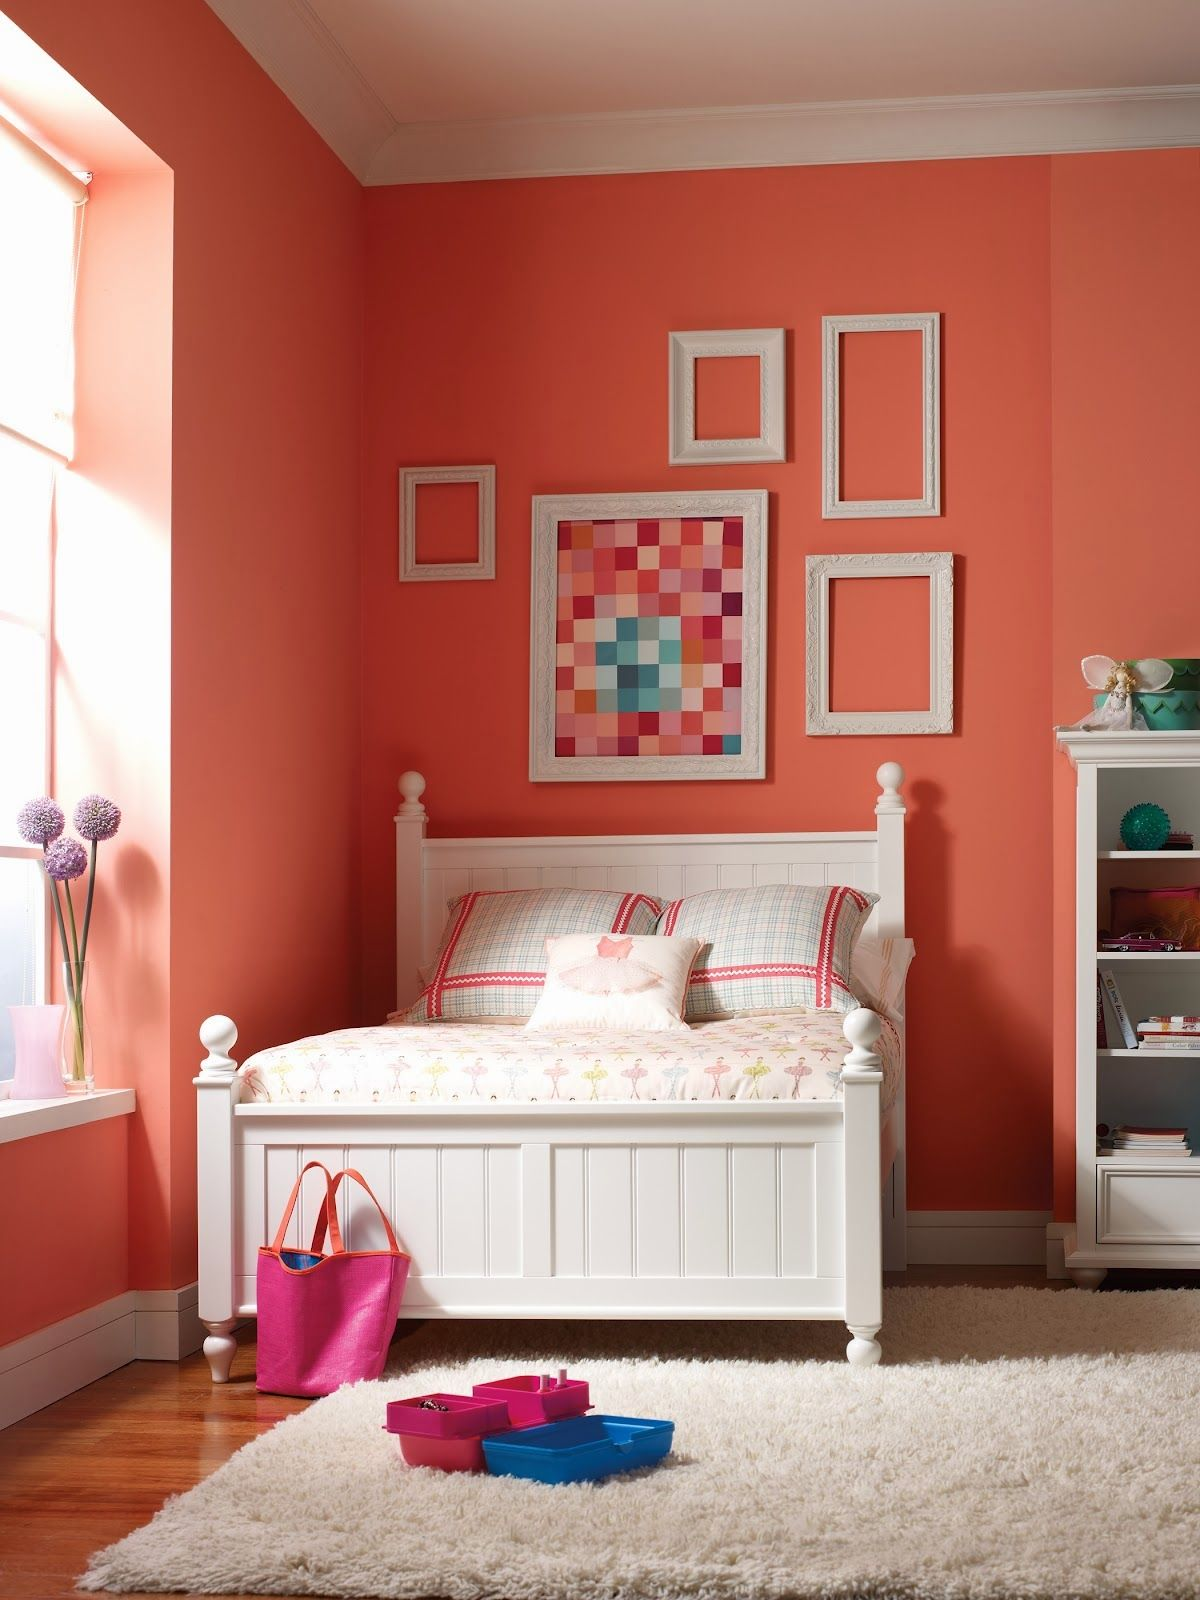 Ideas De Color Para Pintar Un Dormitorio Habitaciones Para Adolescentes Color Coral Dormitorios Colores Y